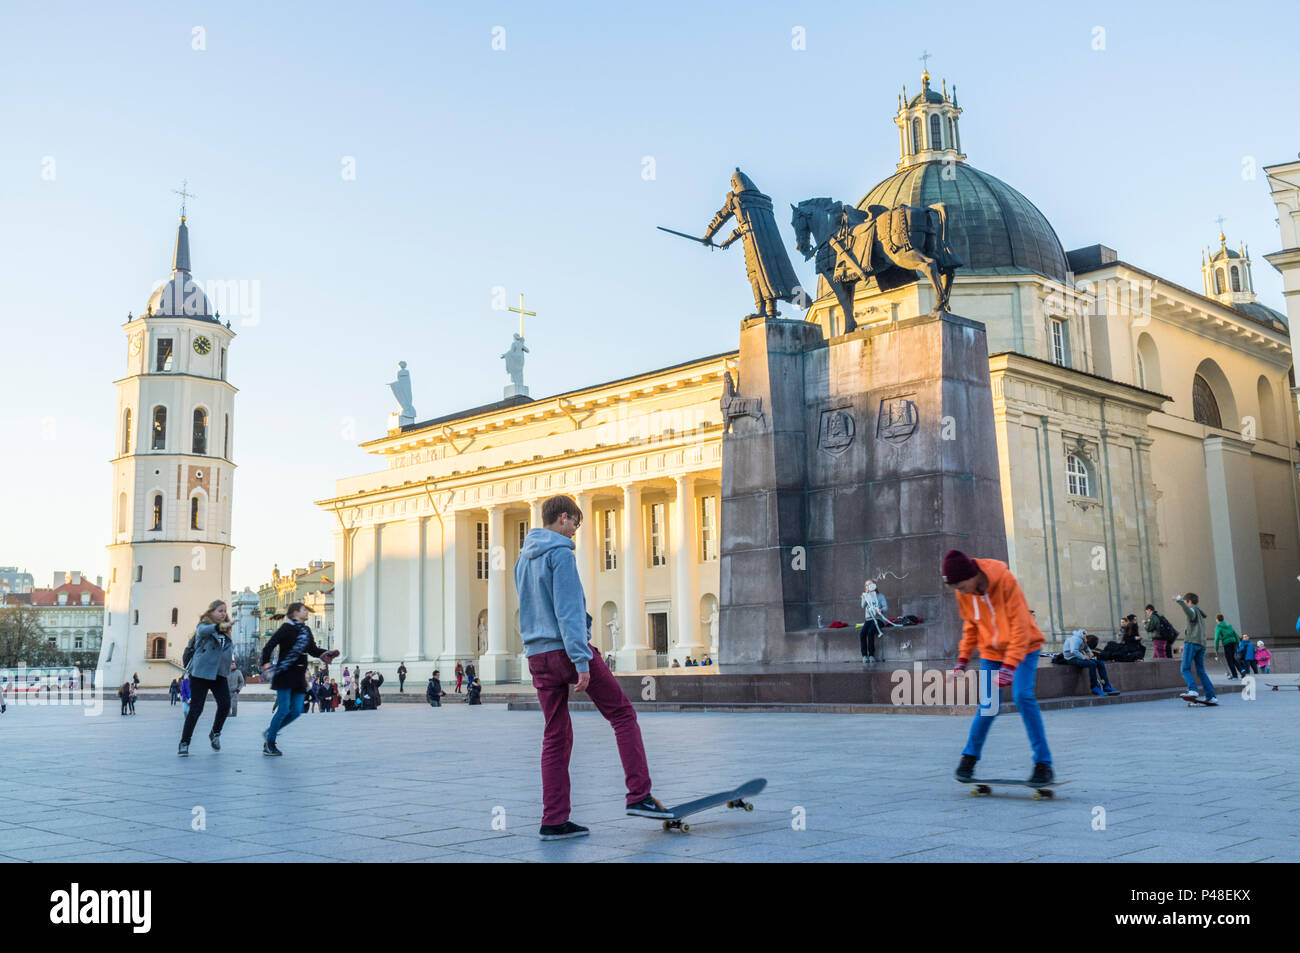 Vilnius, Lithuania : Young skaters by the  equestrian statue of Gediminas at Cathedral Square. - Stock Image